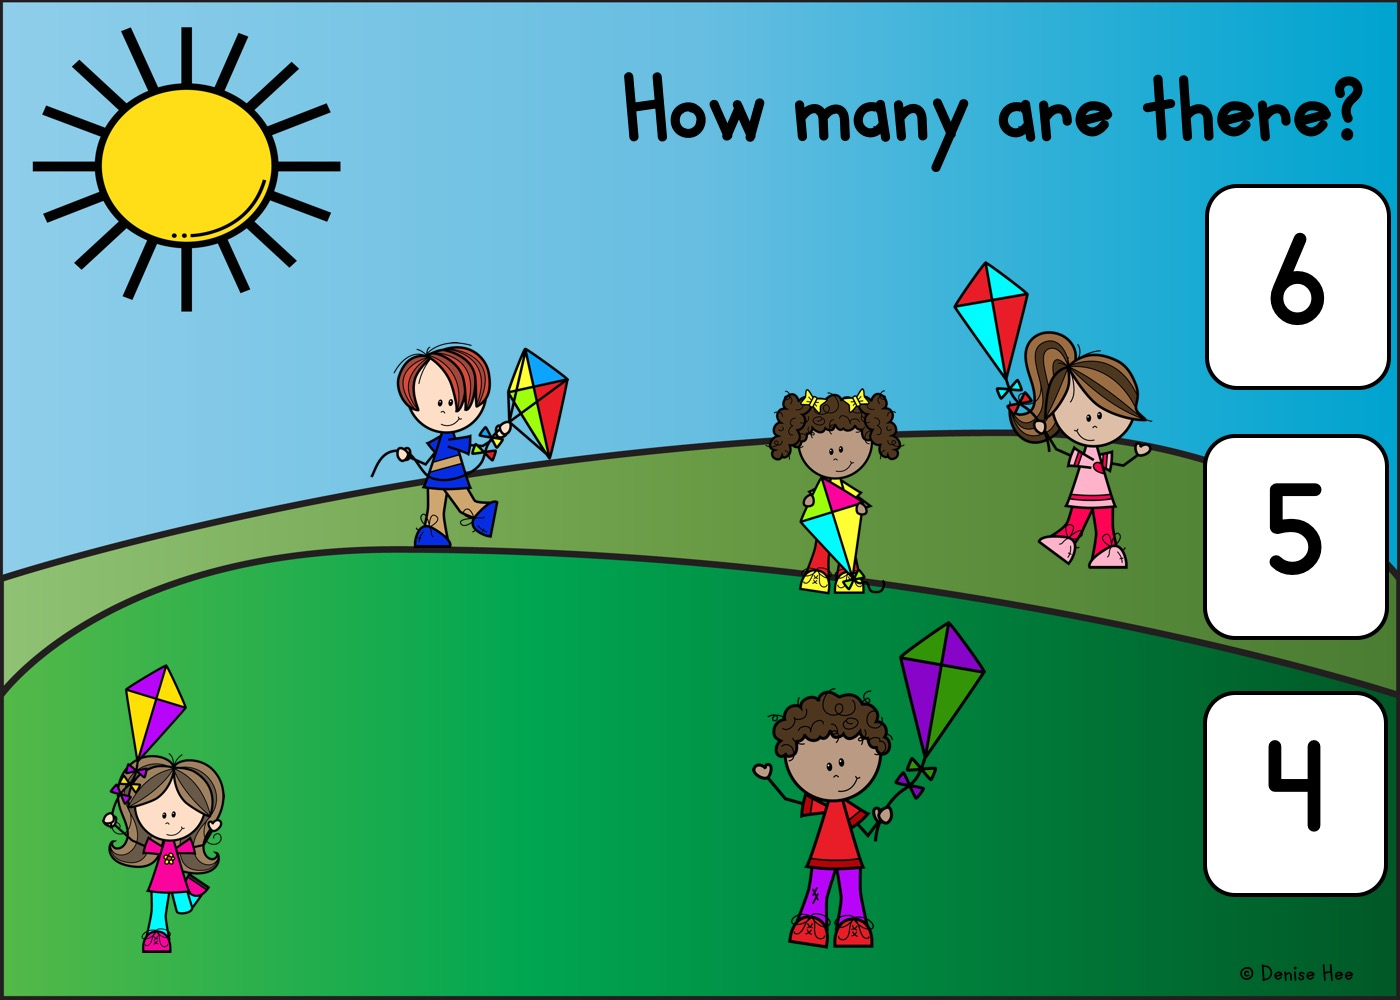 Count The Kites 1-10 | Free Printable Worksheets For Kids | Look up in the sky and count up to 10 colorful kites! Kids will love the whimsy of this game and look forward to their own time playing outdoors this Spring. Practice counting while strengthening their little hand muscles at the same time with this set of counting clip cards.